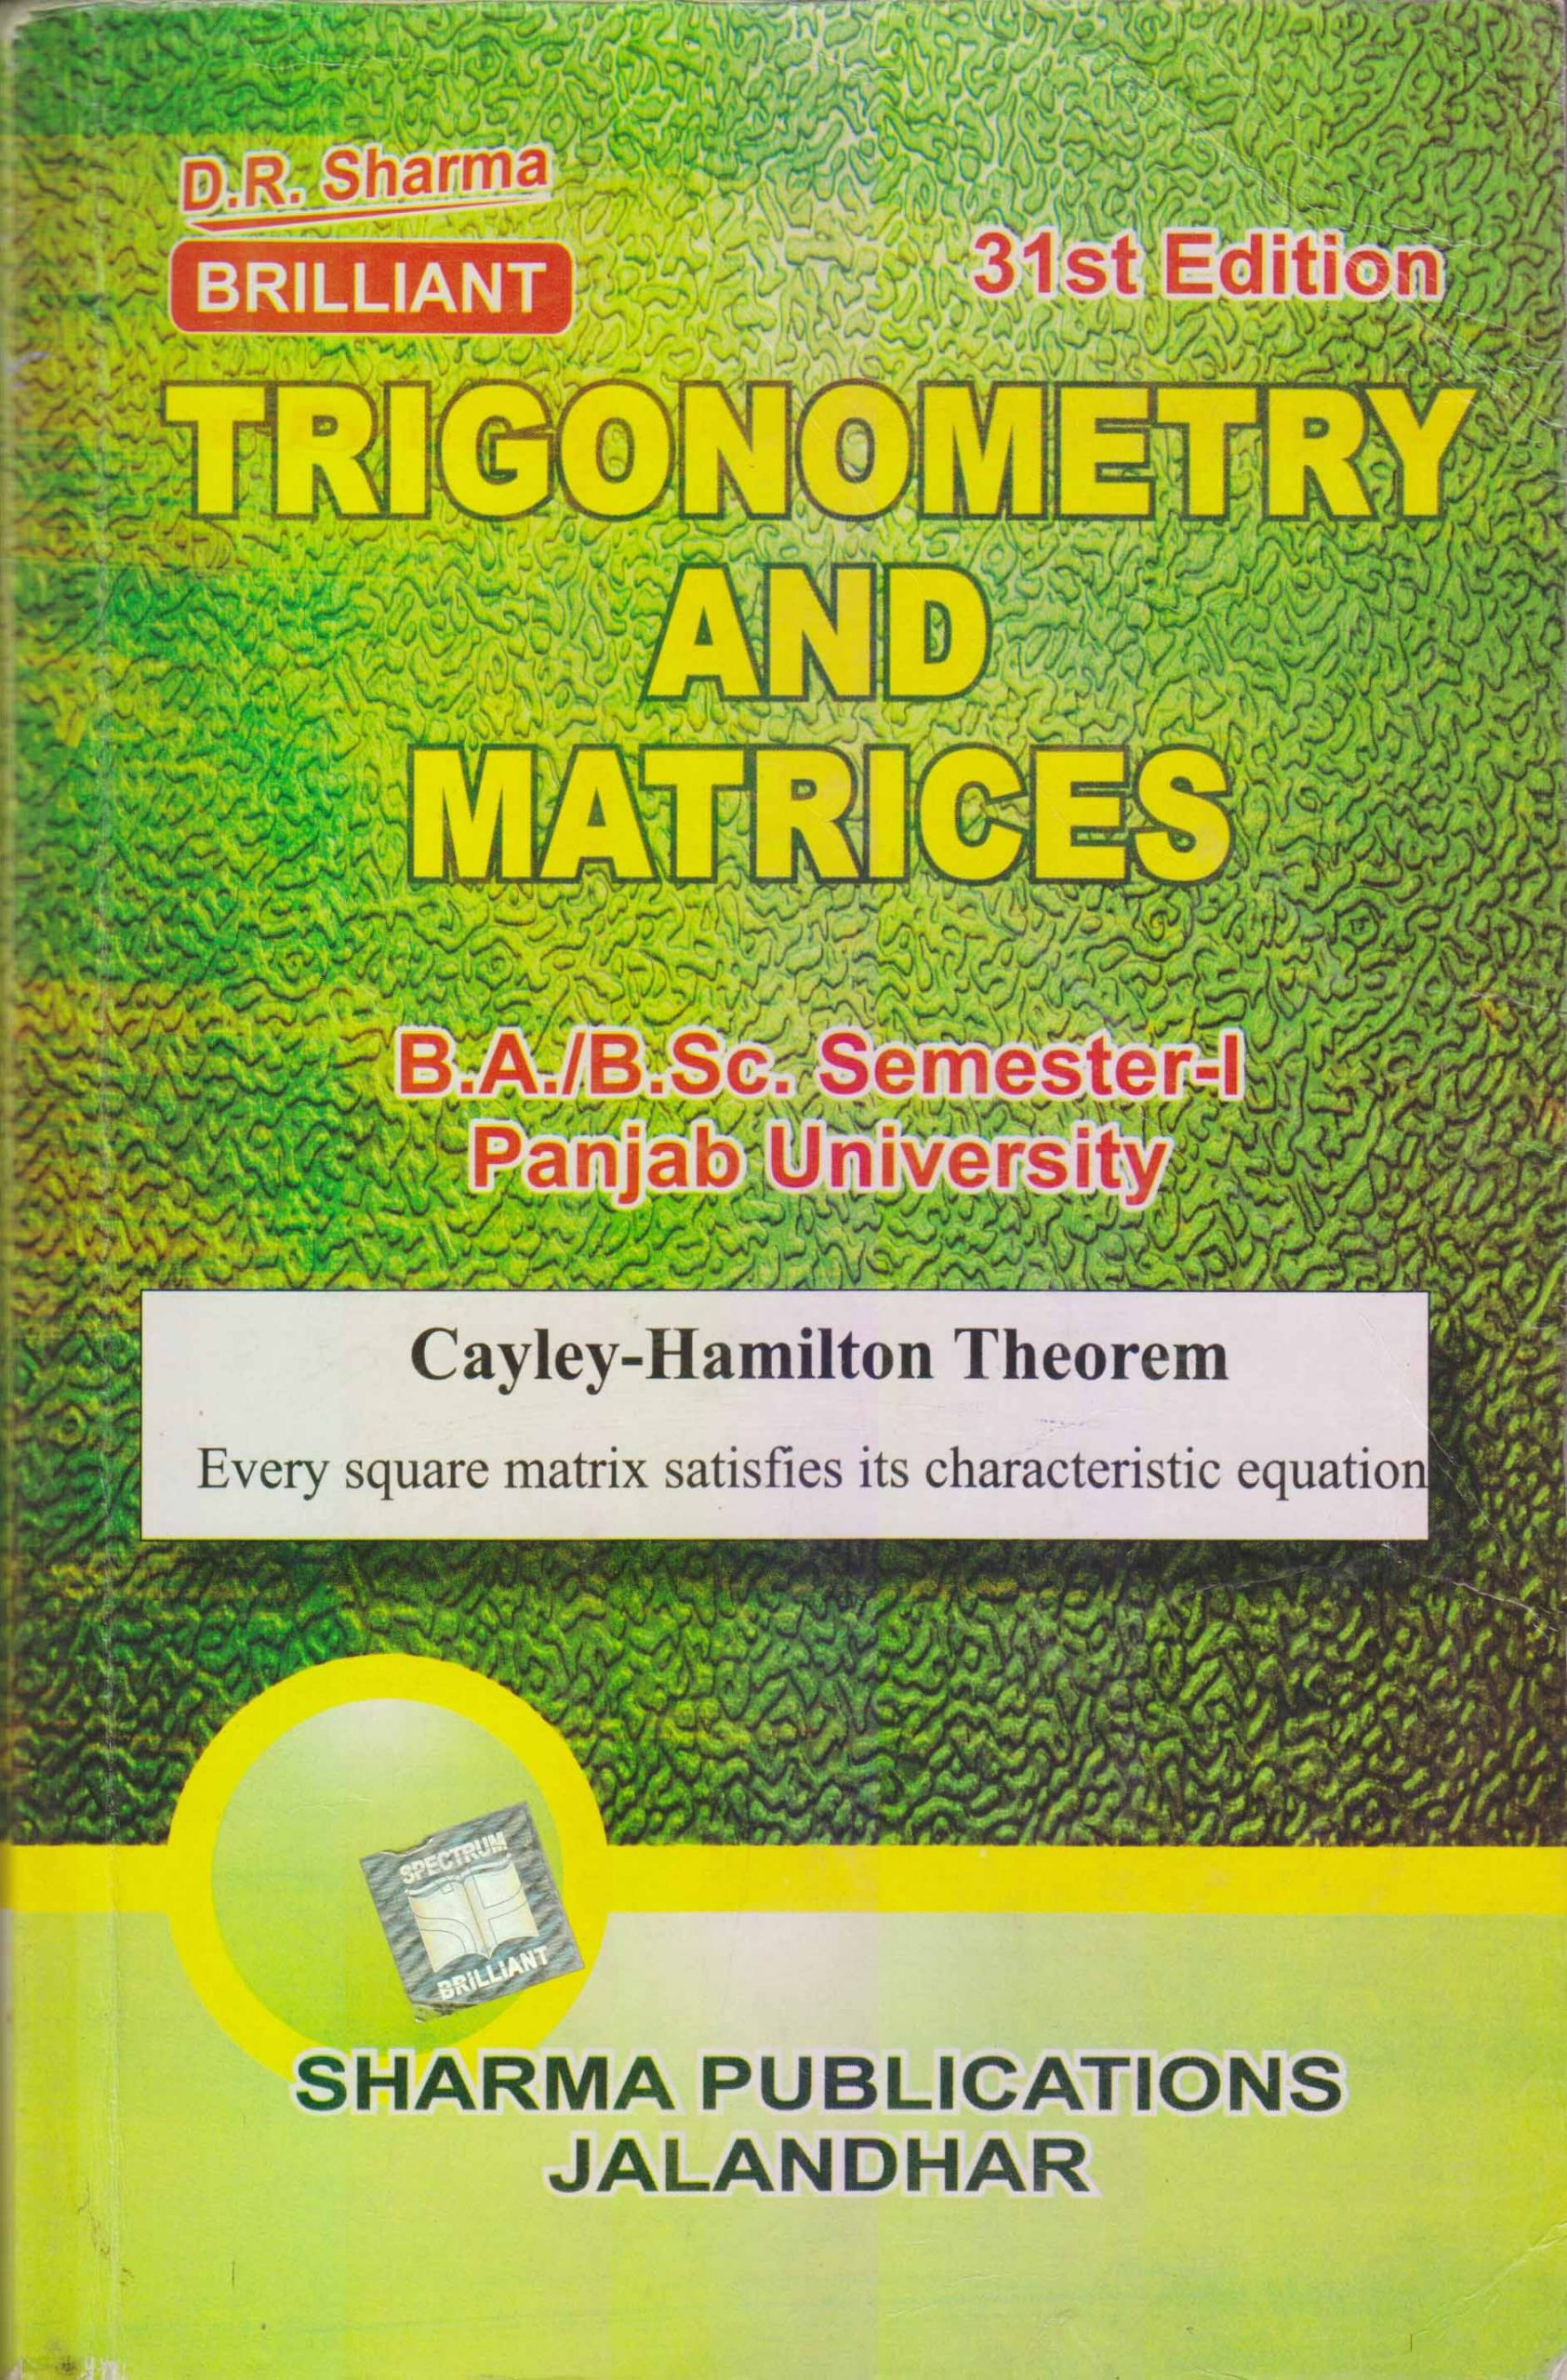 Trigonometry & Matrices for B.A. / B.Sc., Sem. 1 (P.U.) by D.R. Sharma